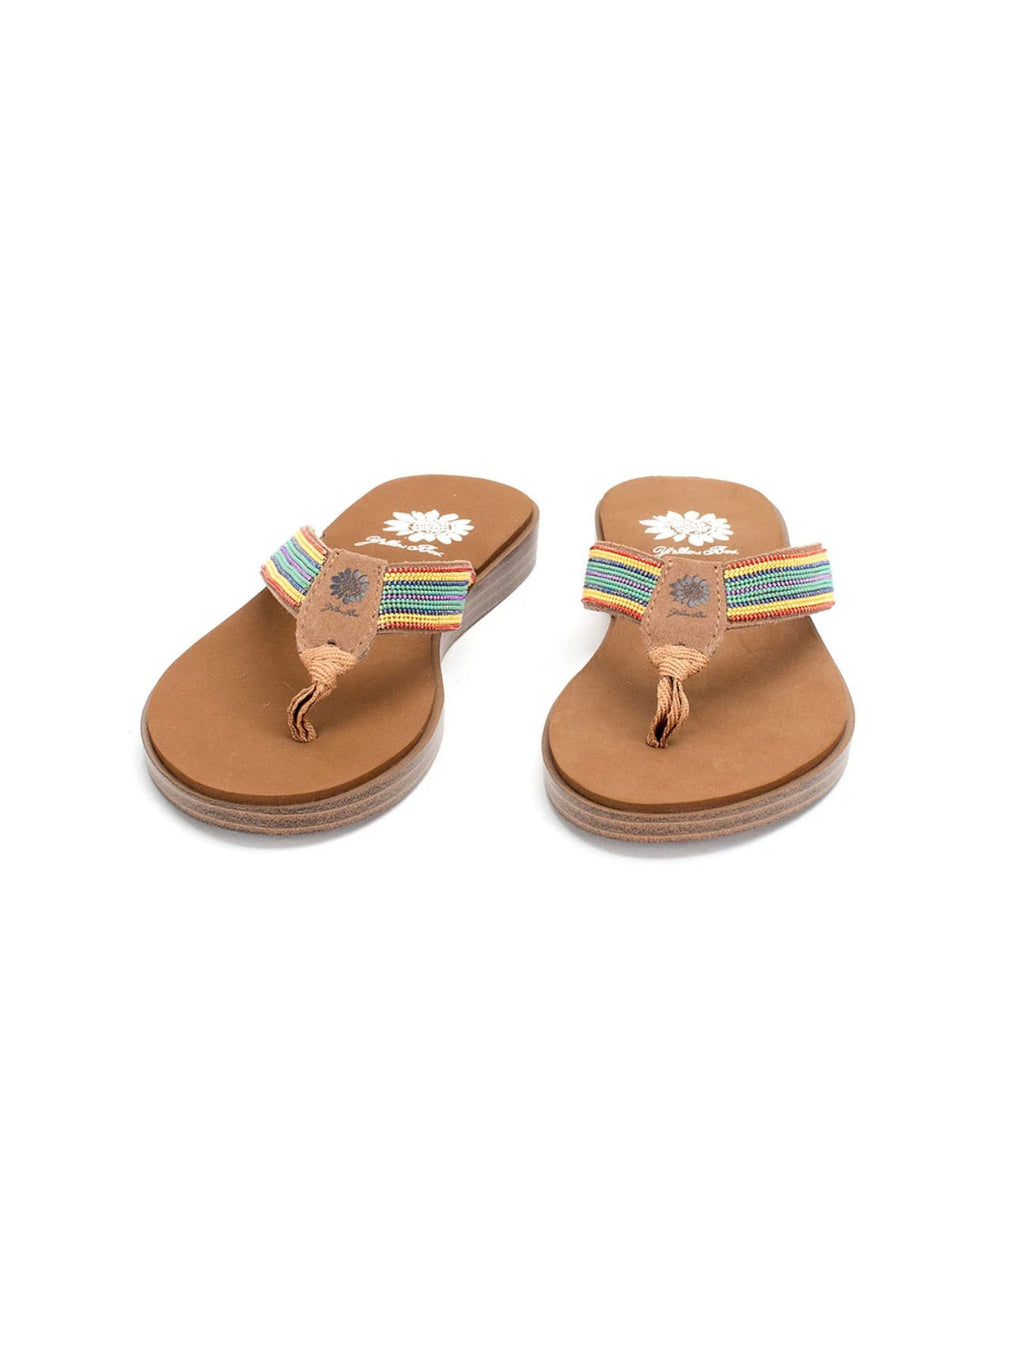 Yellow Box Dainty Sandal in Rainbow